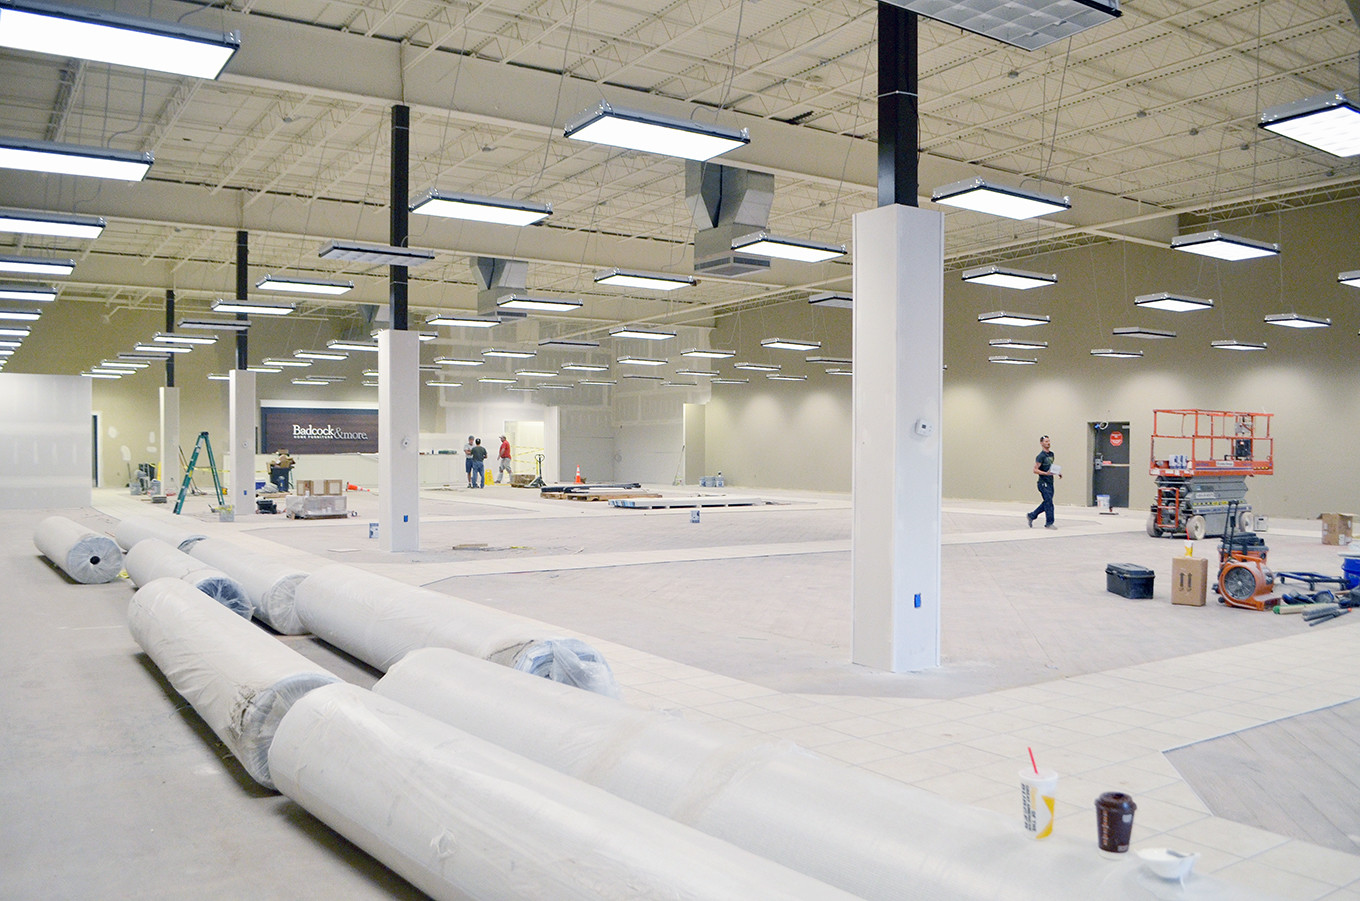 Workers Were Busy Inside The New Badcock Furniture In Jasper Earlier This  Week. The 13,383